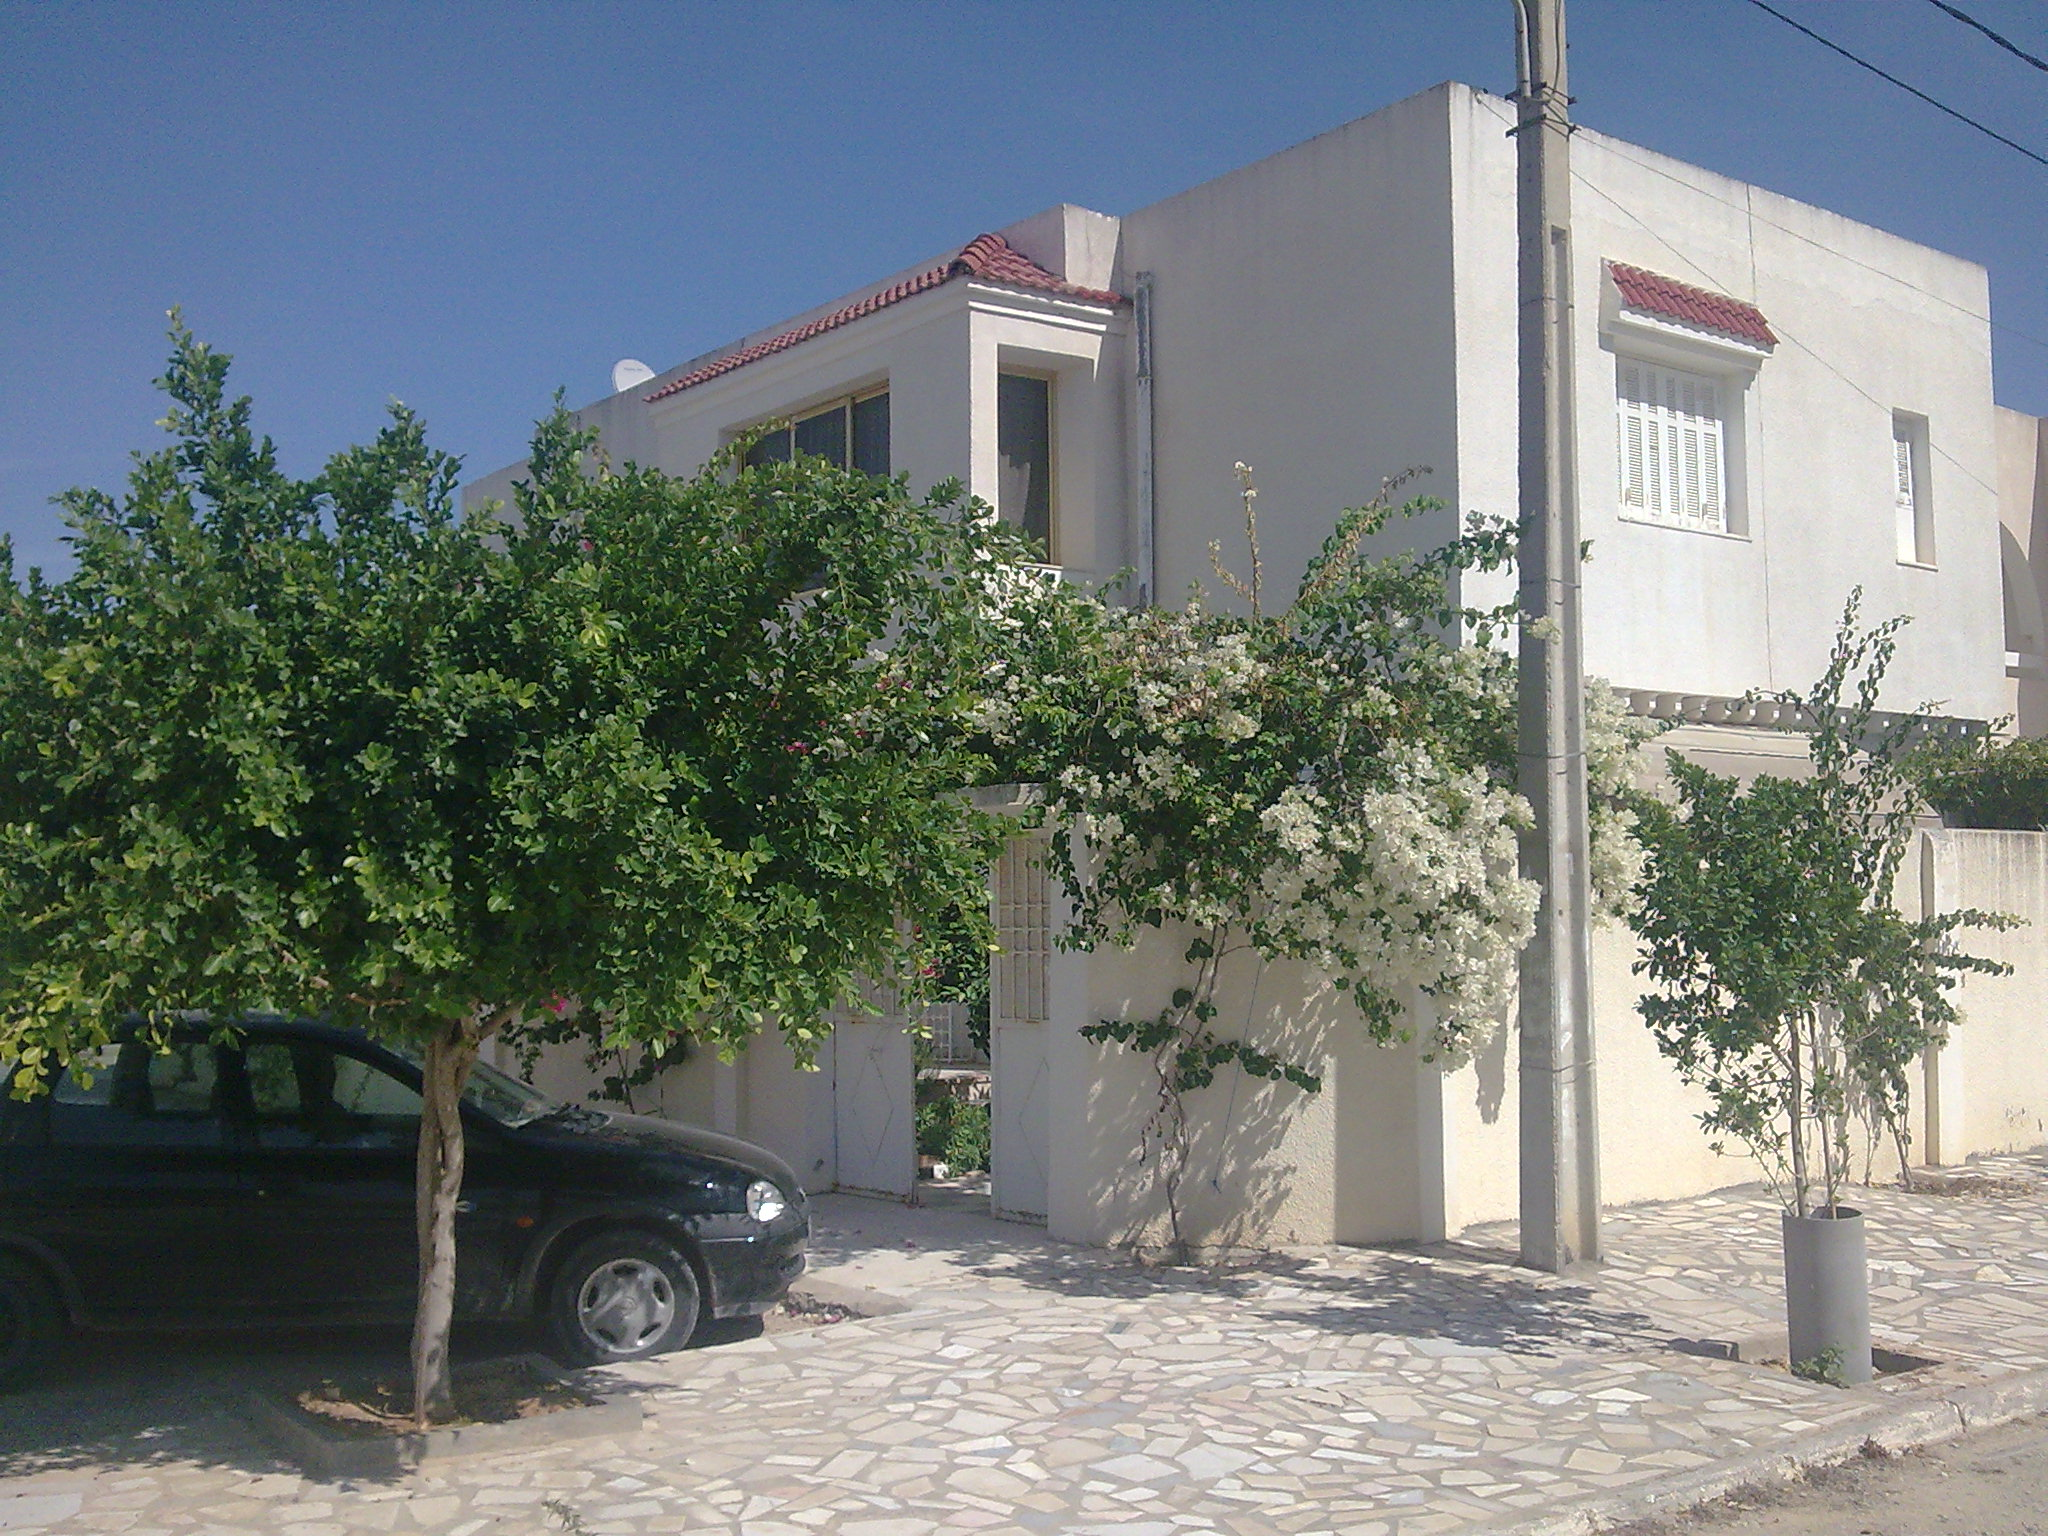 A vendre villa a ezzahra for Budget construction maison tunisie